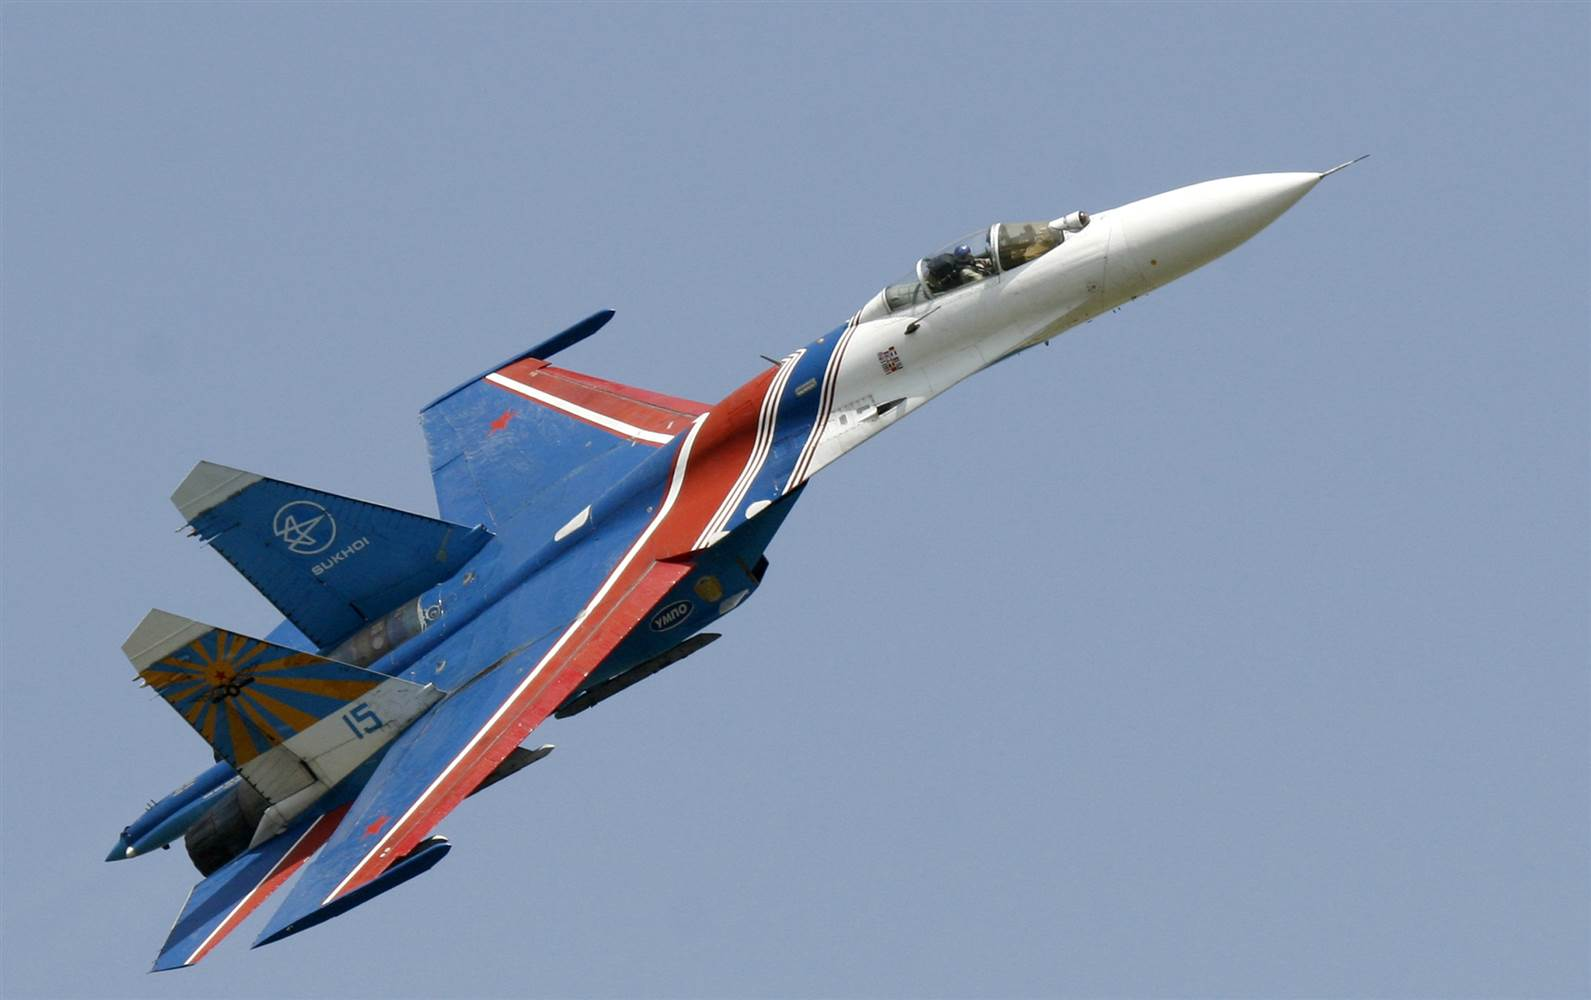 Russian Warplane Flies in 'Unsafe' Manner Near U.S. Aircraft